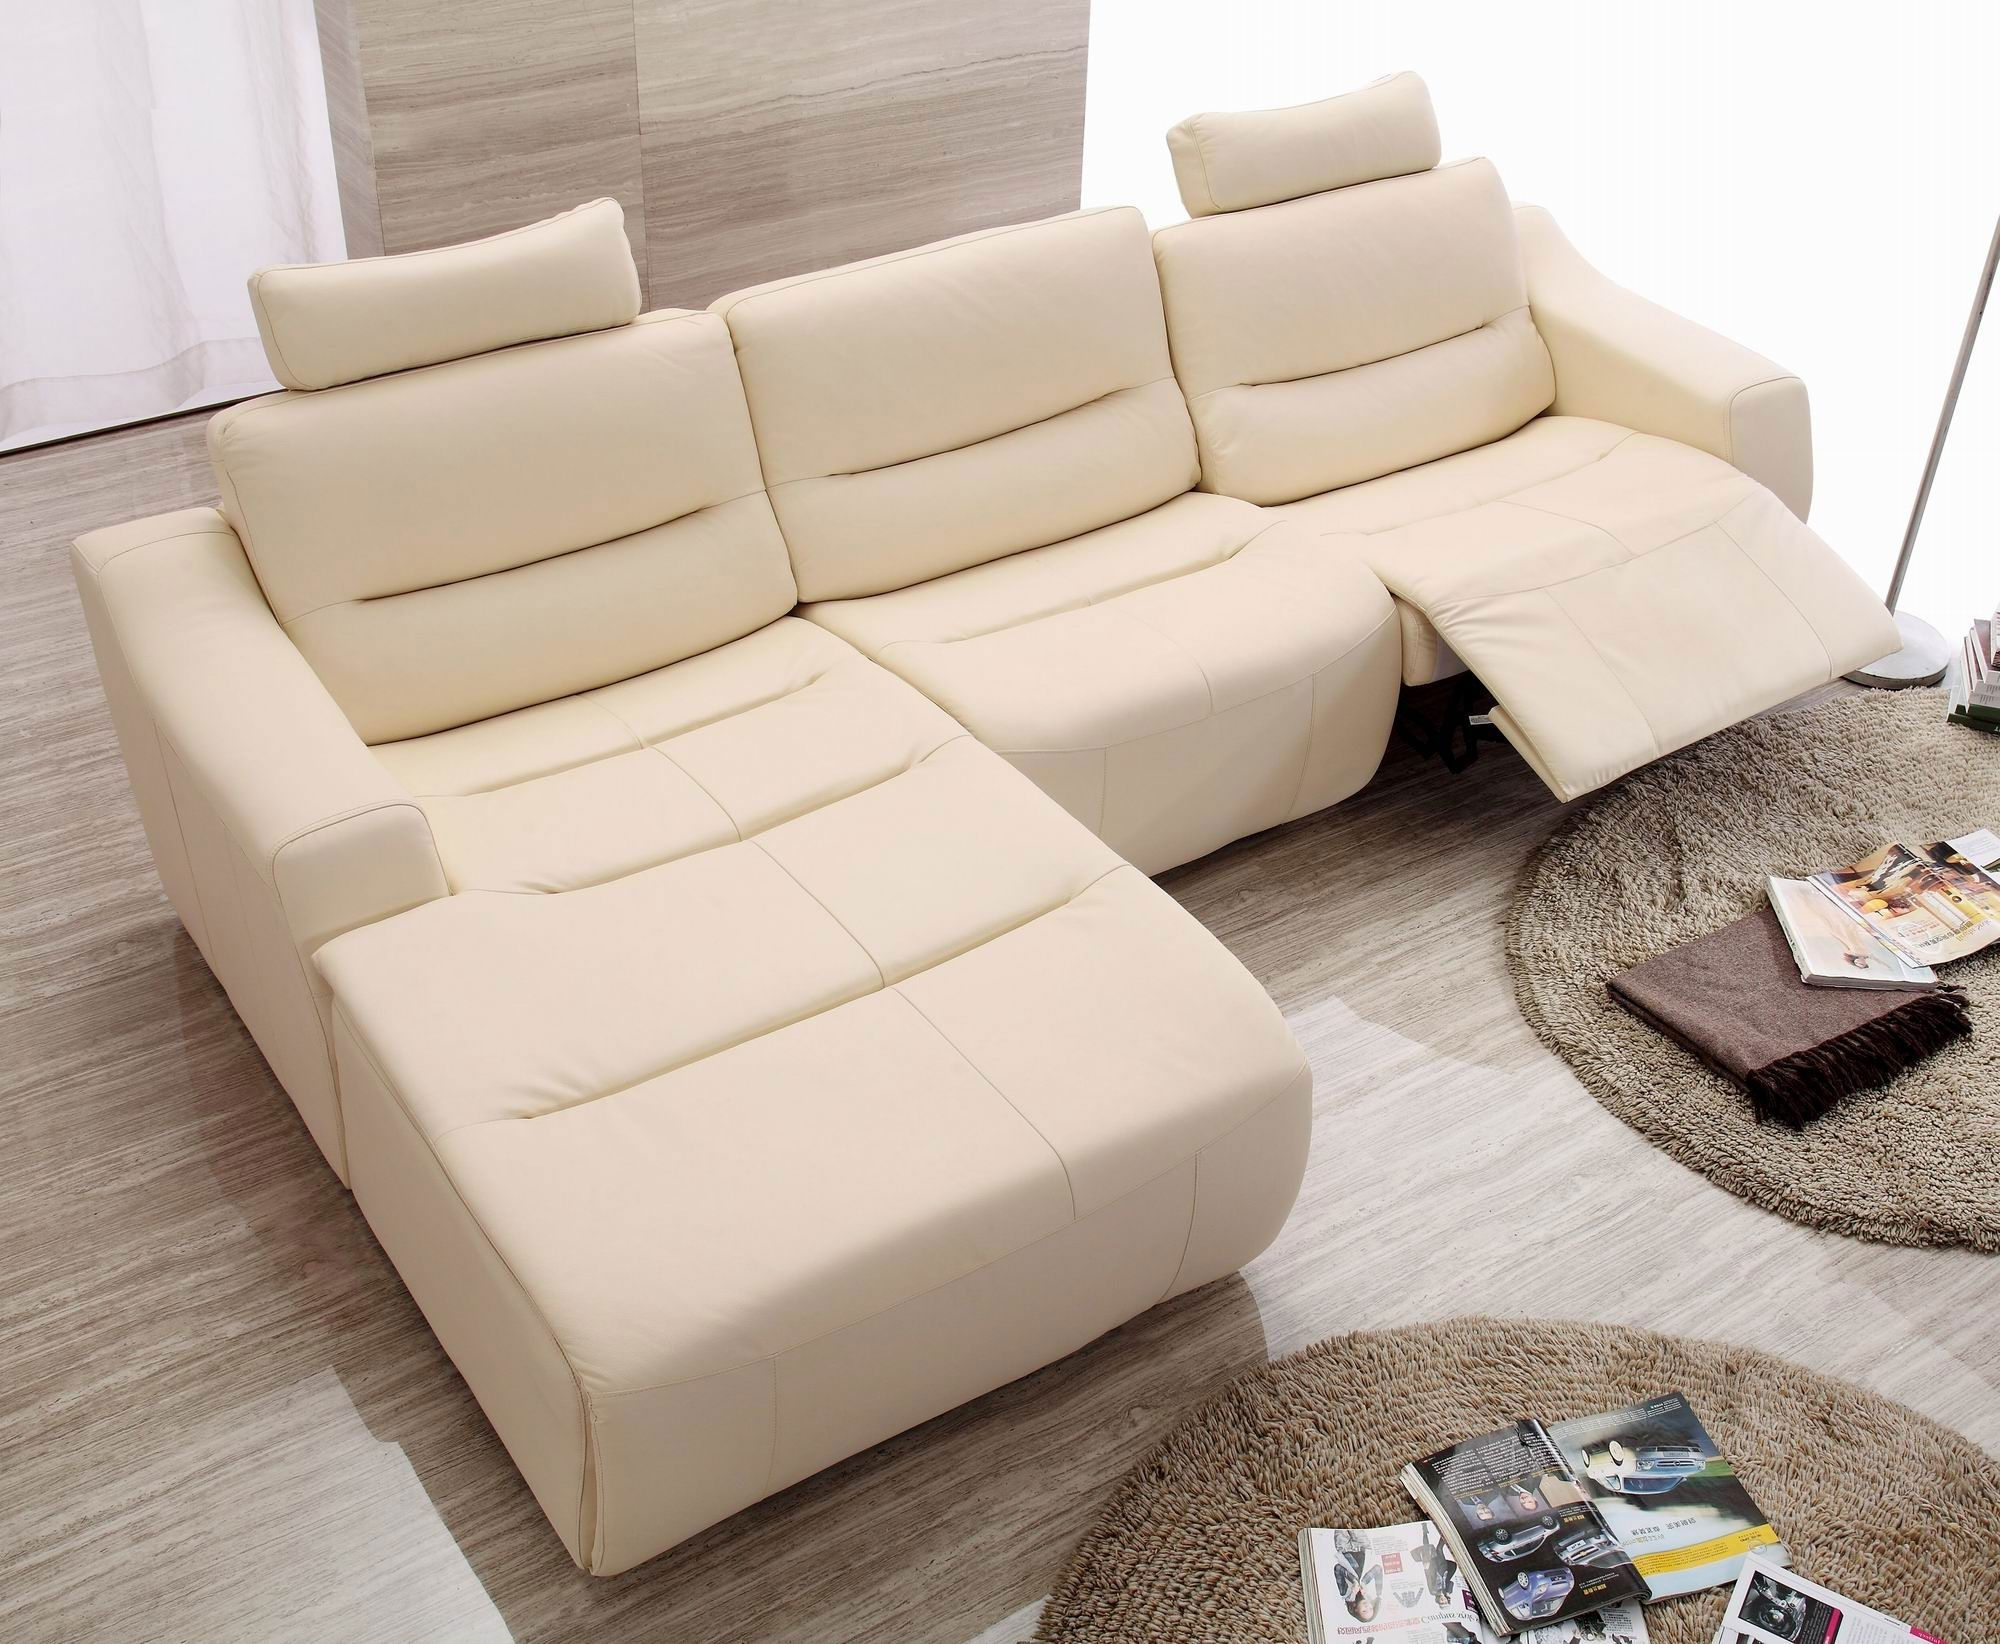 2018 White Or Beige Modern Contemporary Sofa With Chaise – Google In Sectional Sofas For Small Spaces With Recliners (View 3 of 15)